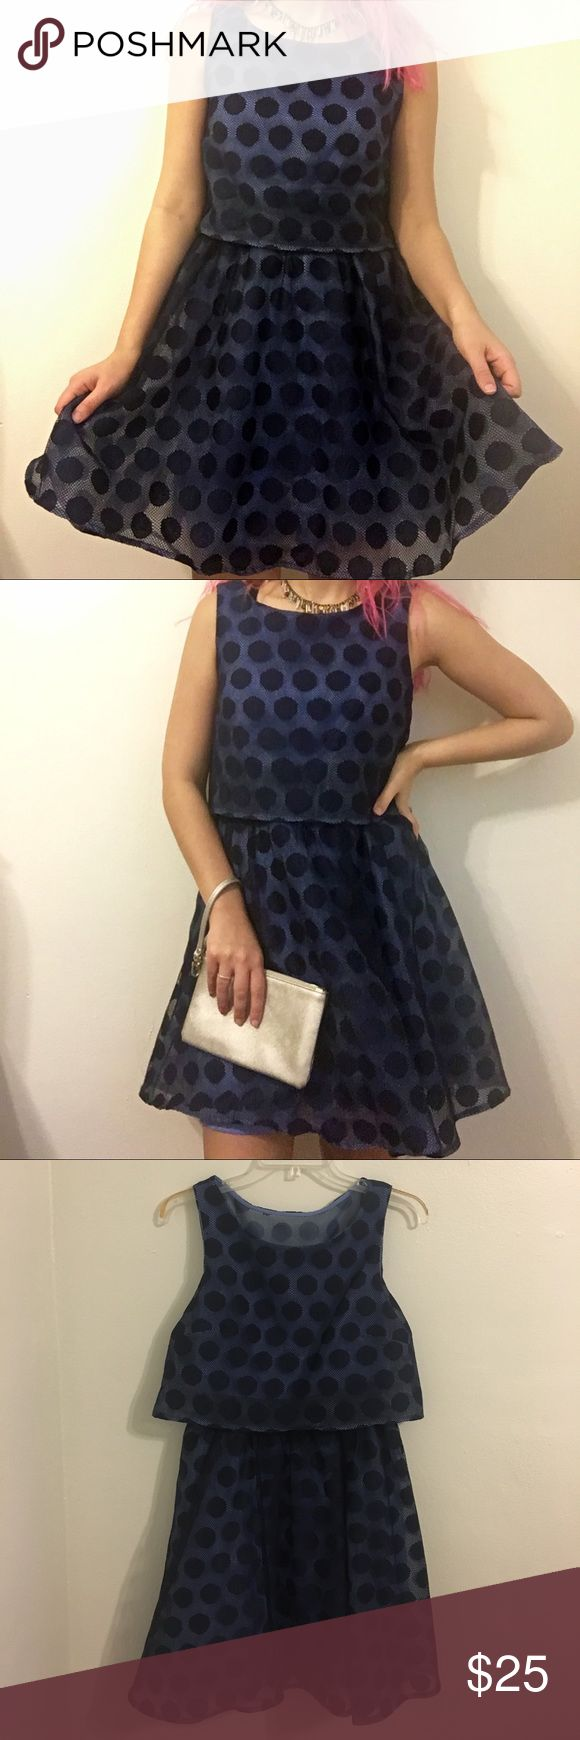 Betsey Johnson lace, polka dot cocktail dress comfortable, quirky, and perfect for a cocktail party, Excellent-used condition. Feel free to make me an offer! There's always time for a cocktail 🍸 Betsey Johnson Dresses Mini